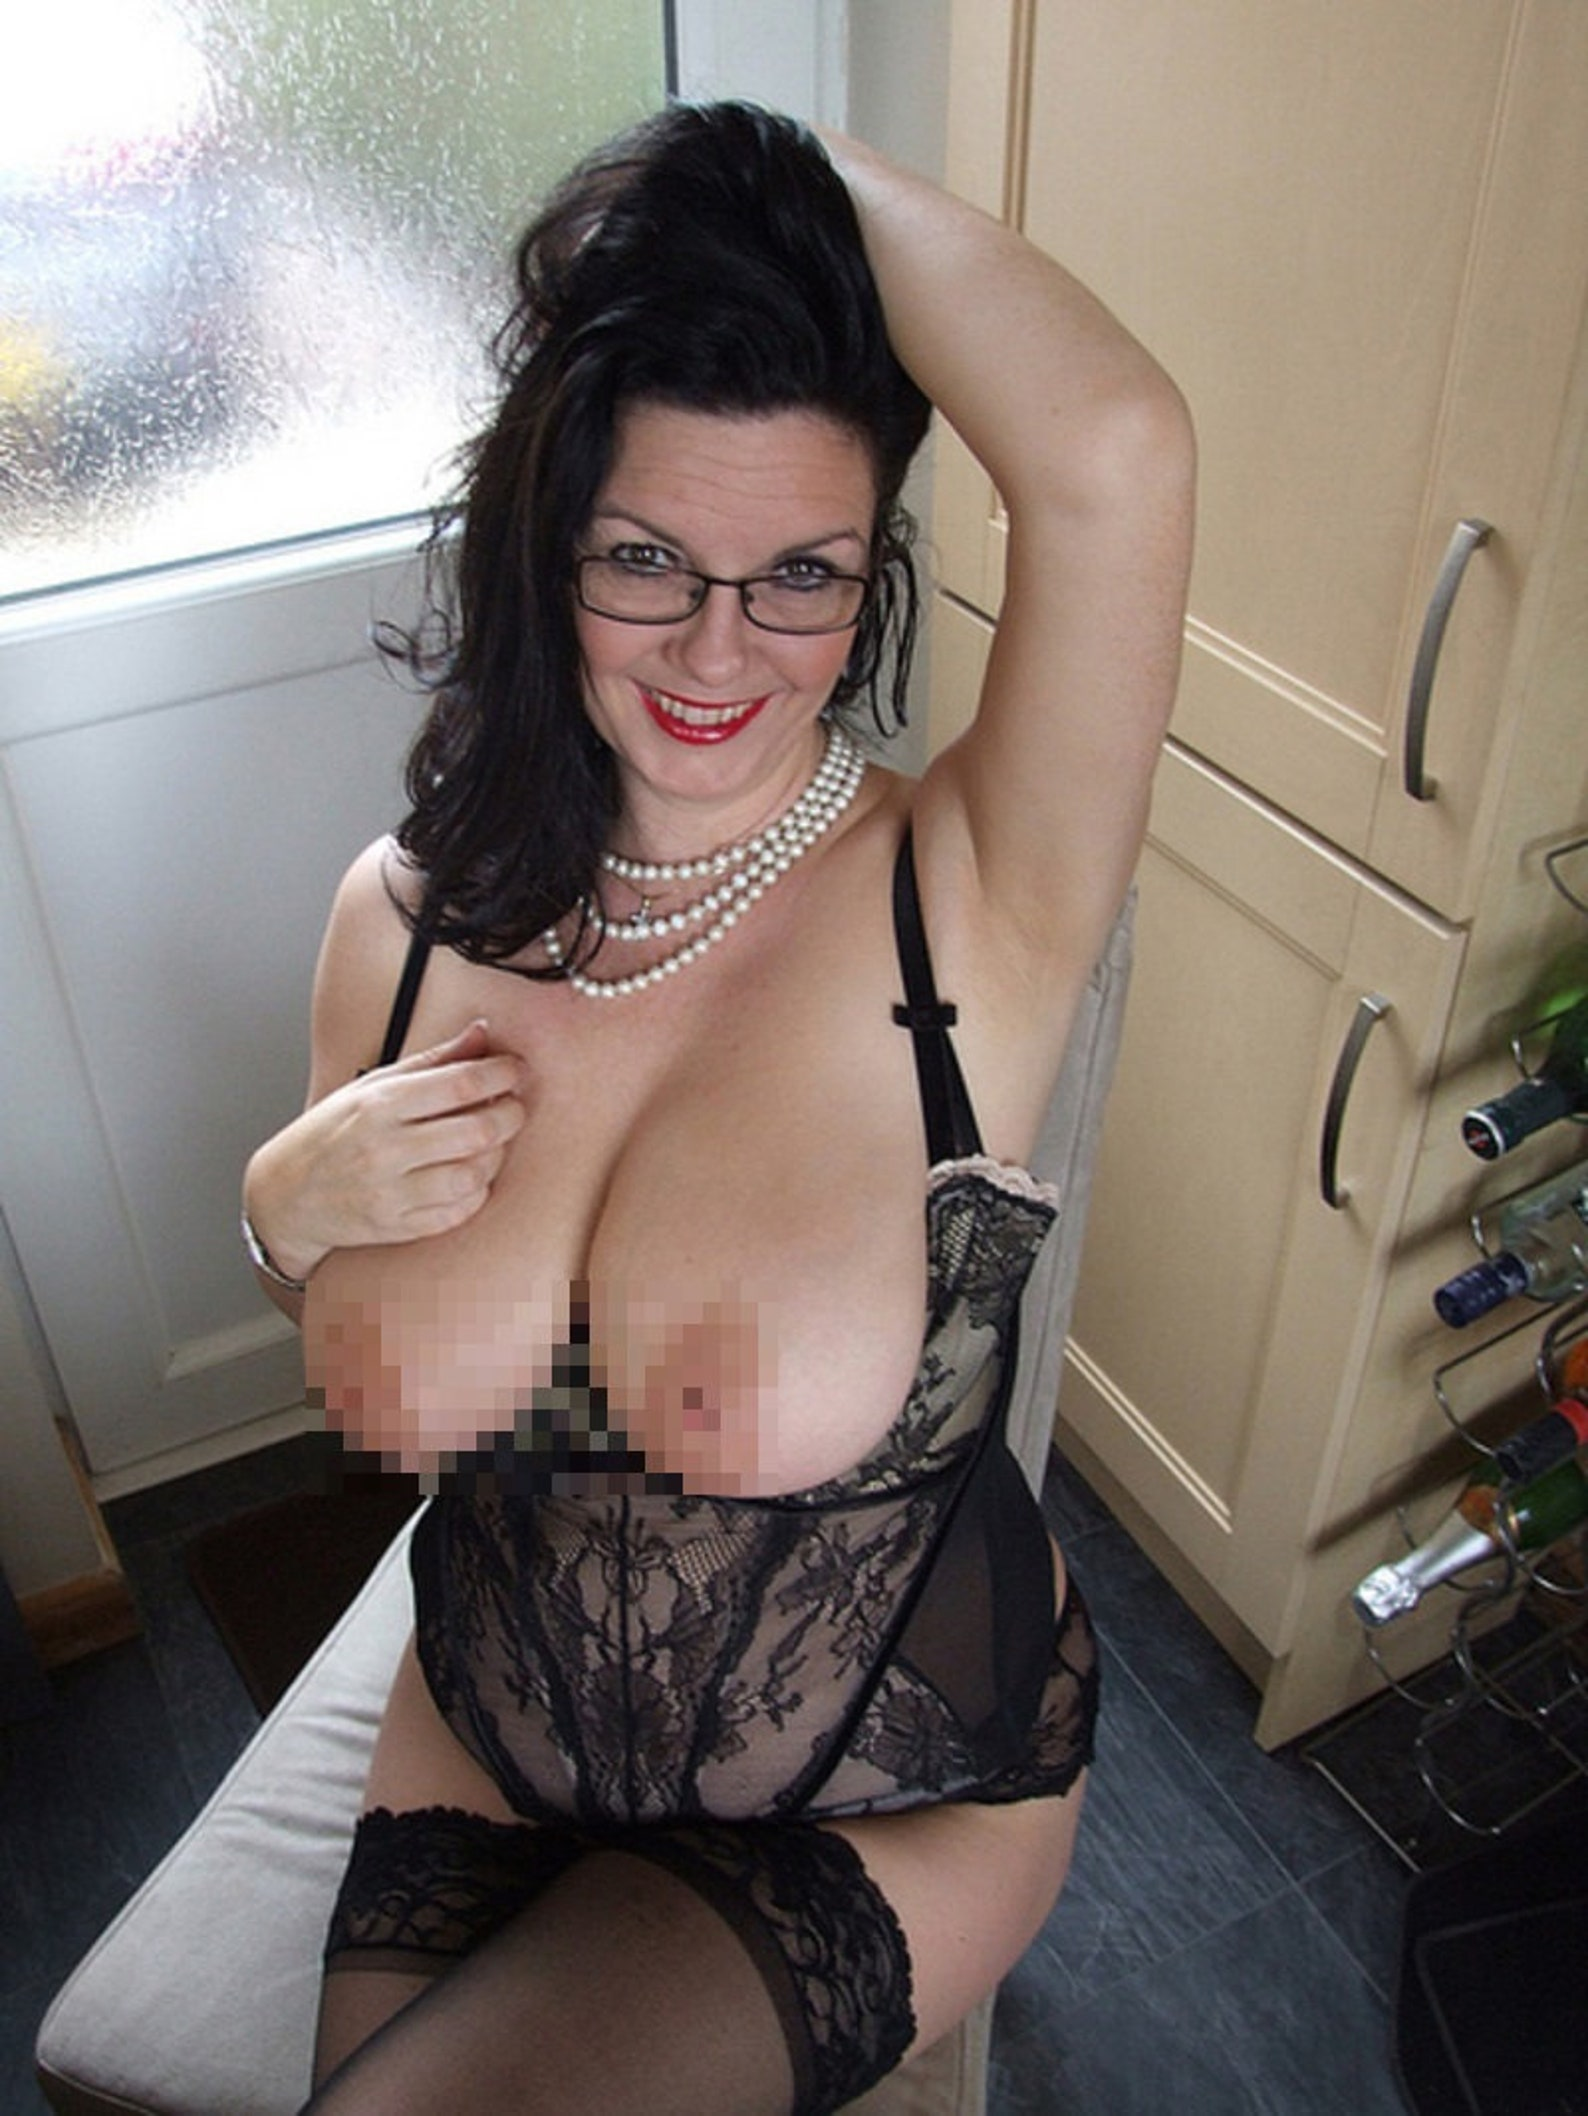 Huge Tits Housewife Galleries With Naked Big Boobs